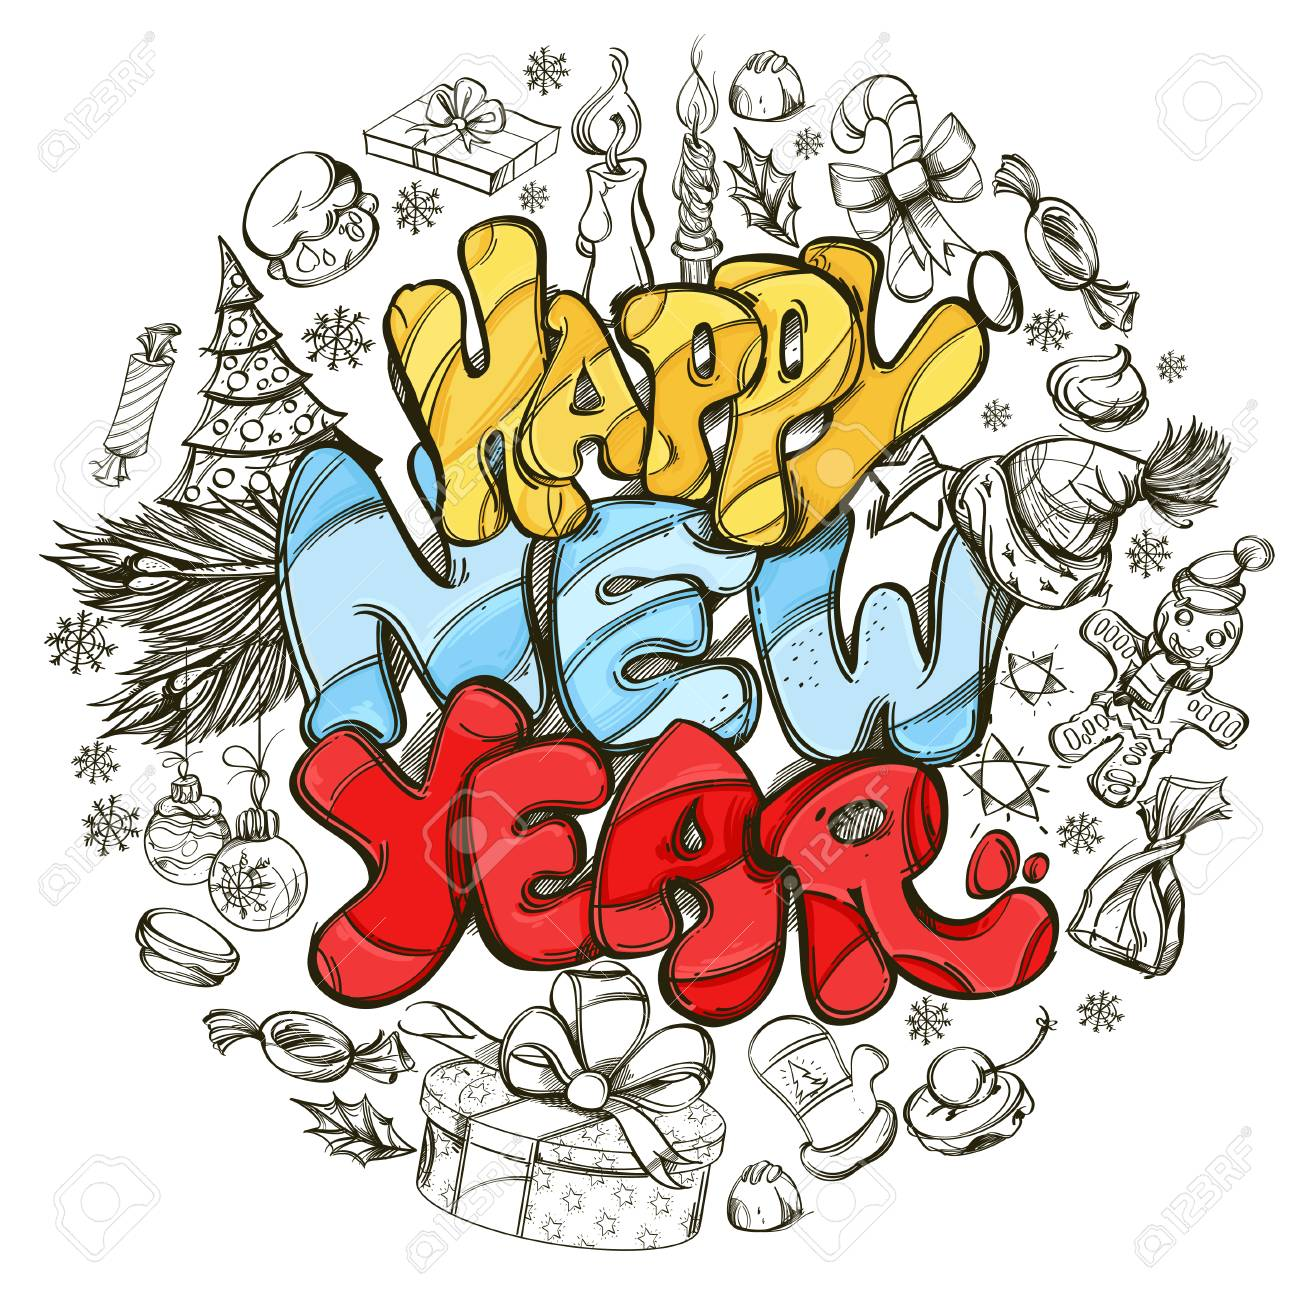 Happy New Year Hand Drawn Outline Illustration With Text And